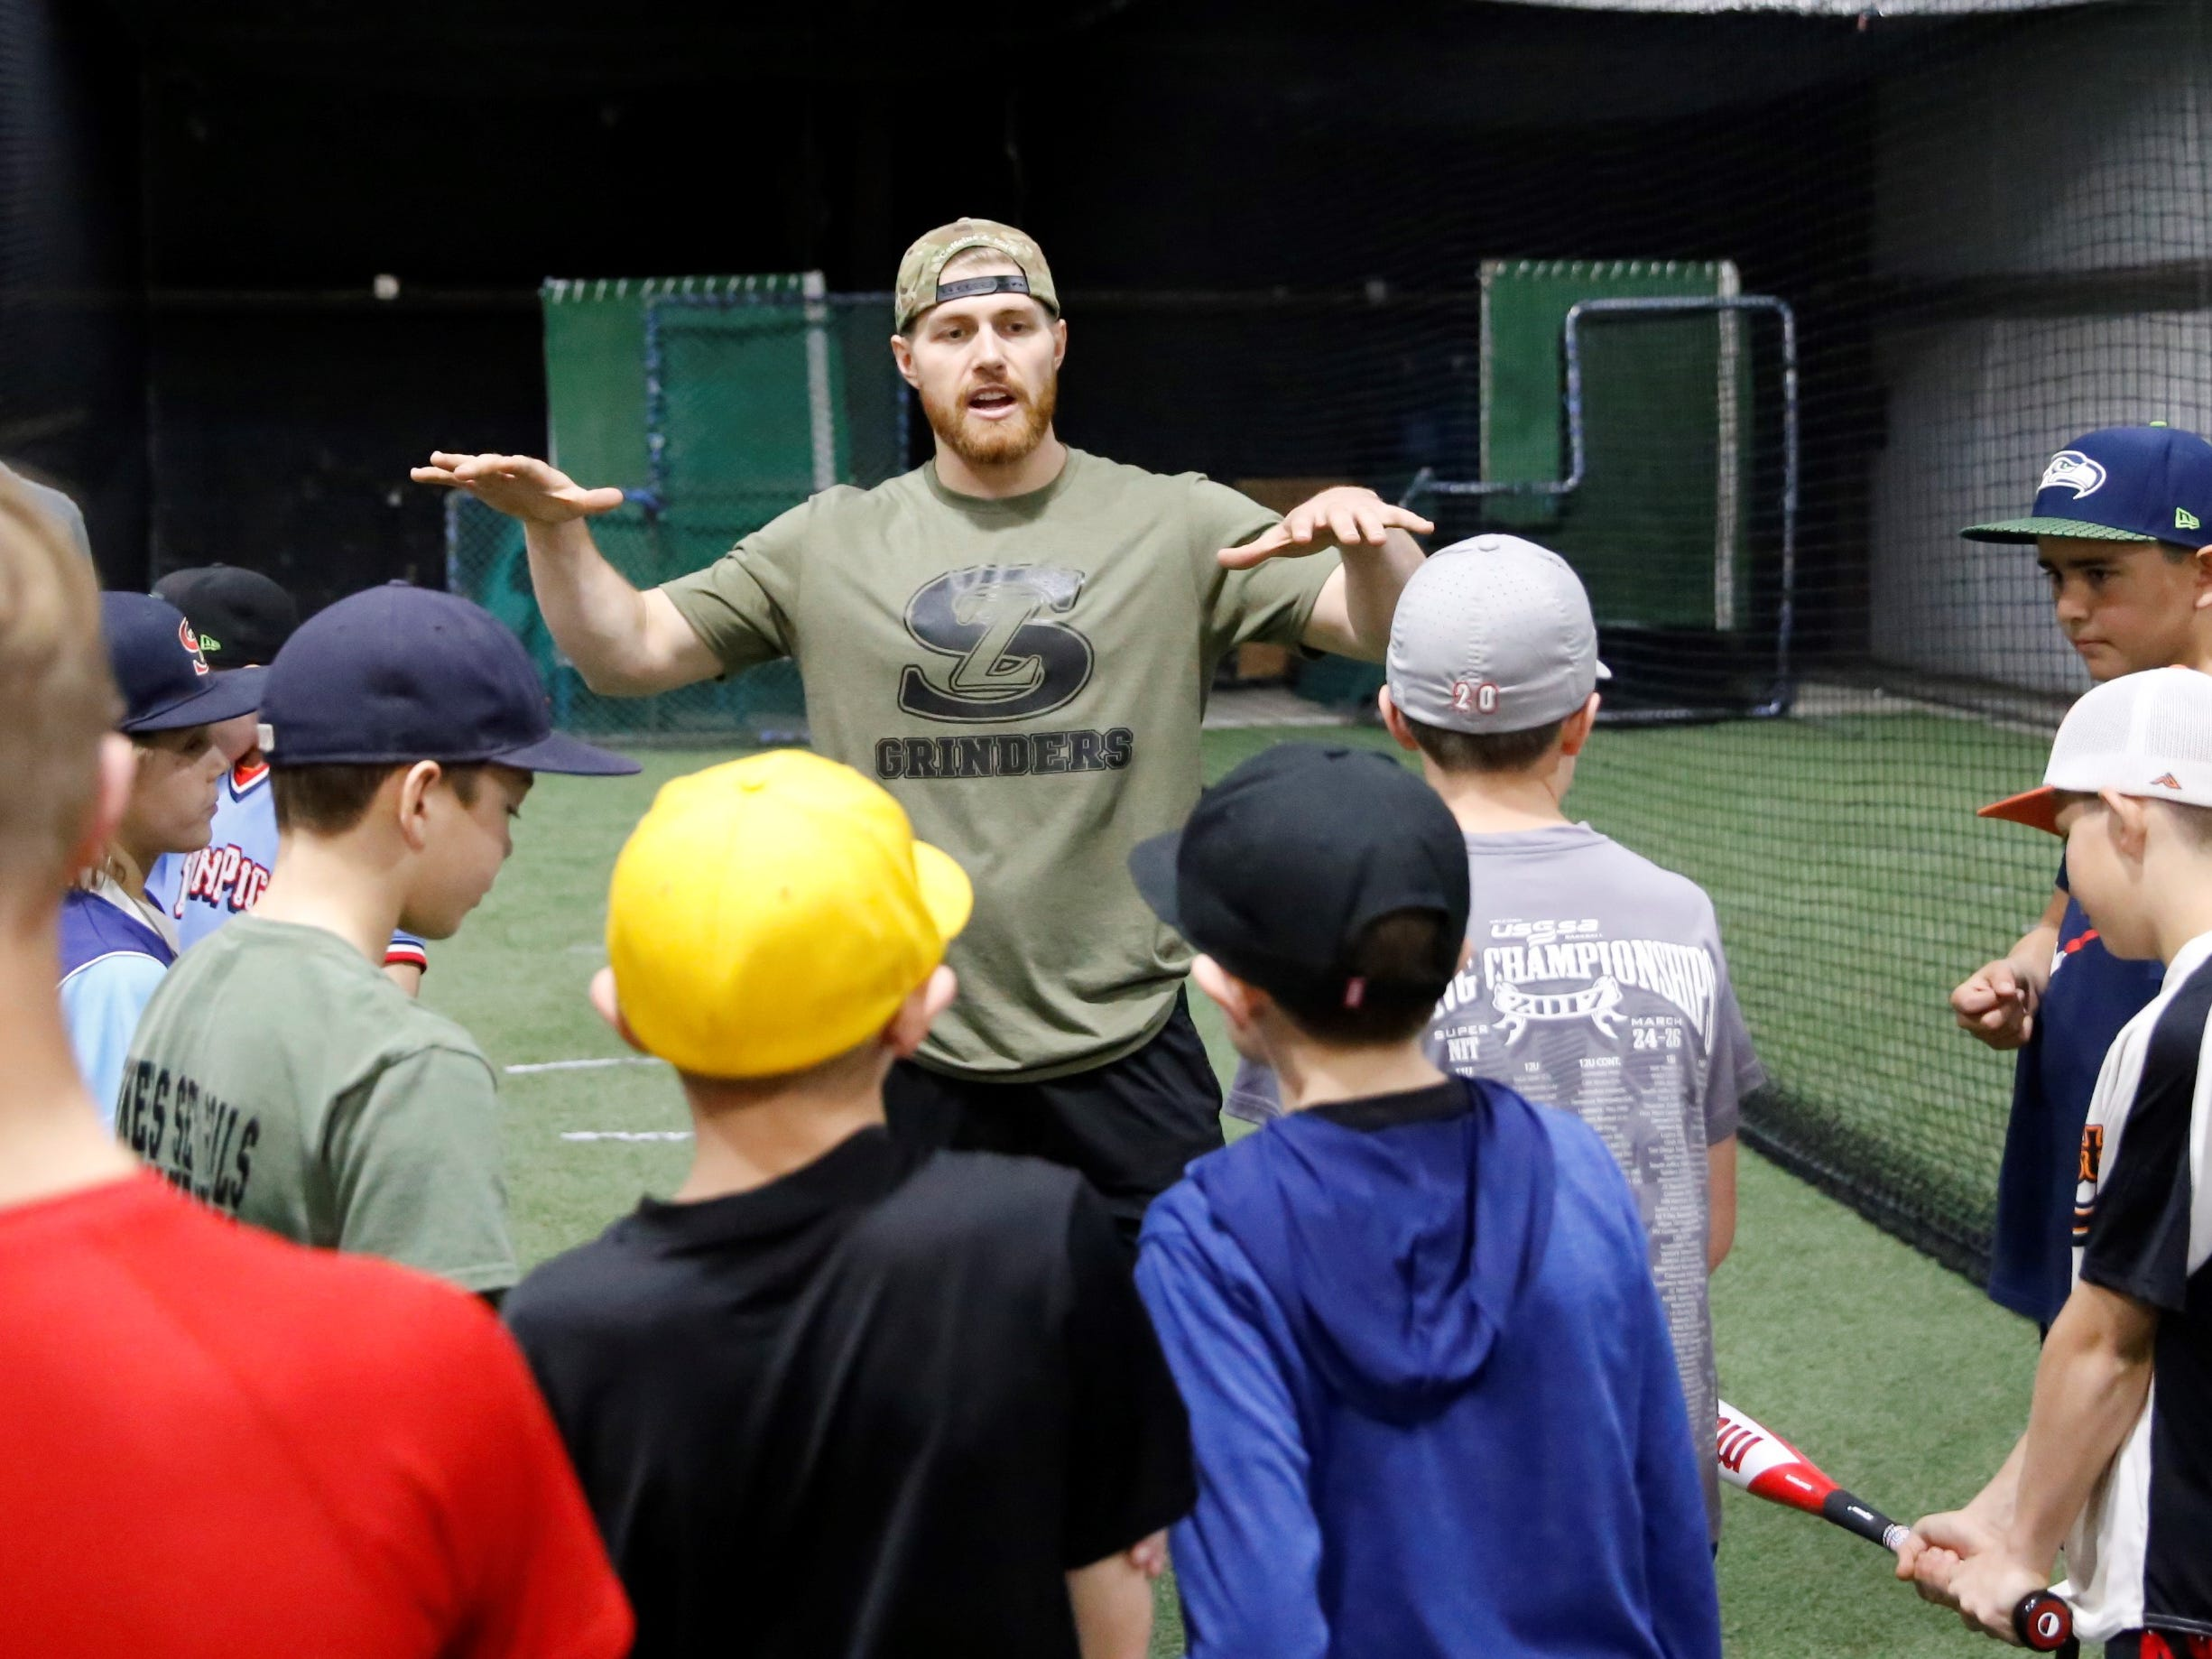 Grinders for Grace baseball camp instructor Jake McCasland gets his station ready for batting practice during the fourth annual camp Saturday at the Strike Zone training facility in Farmington.